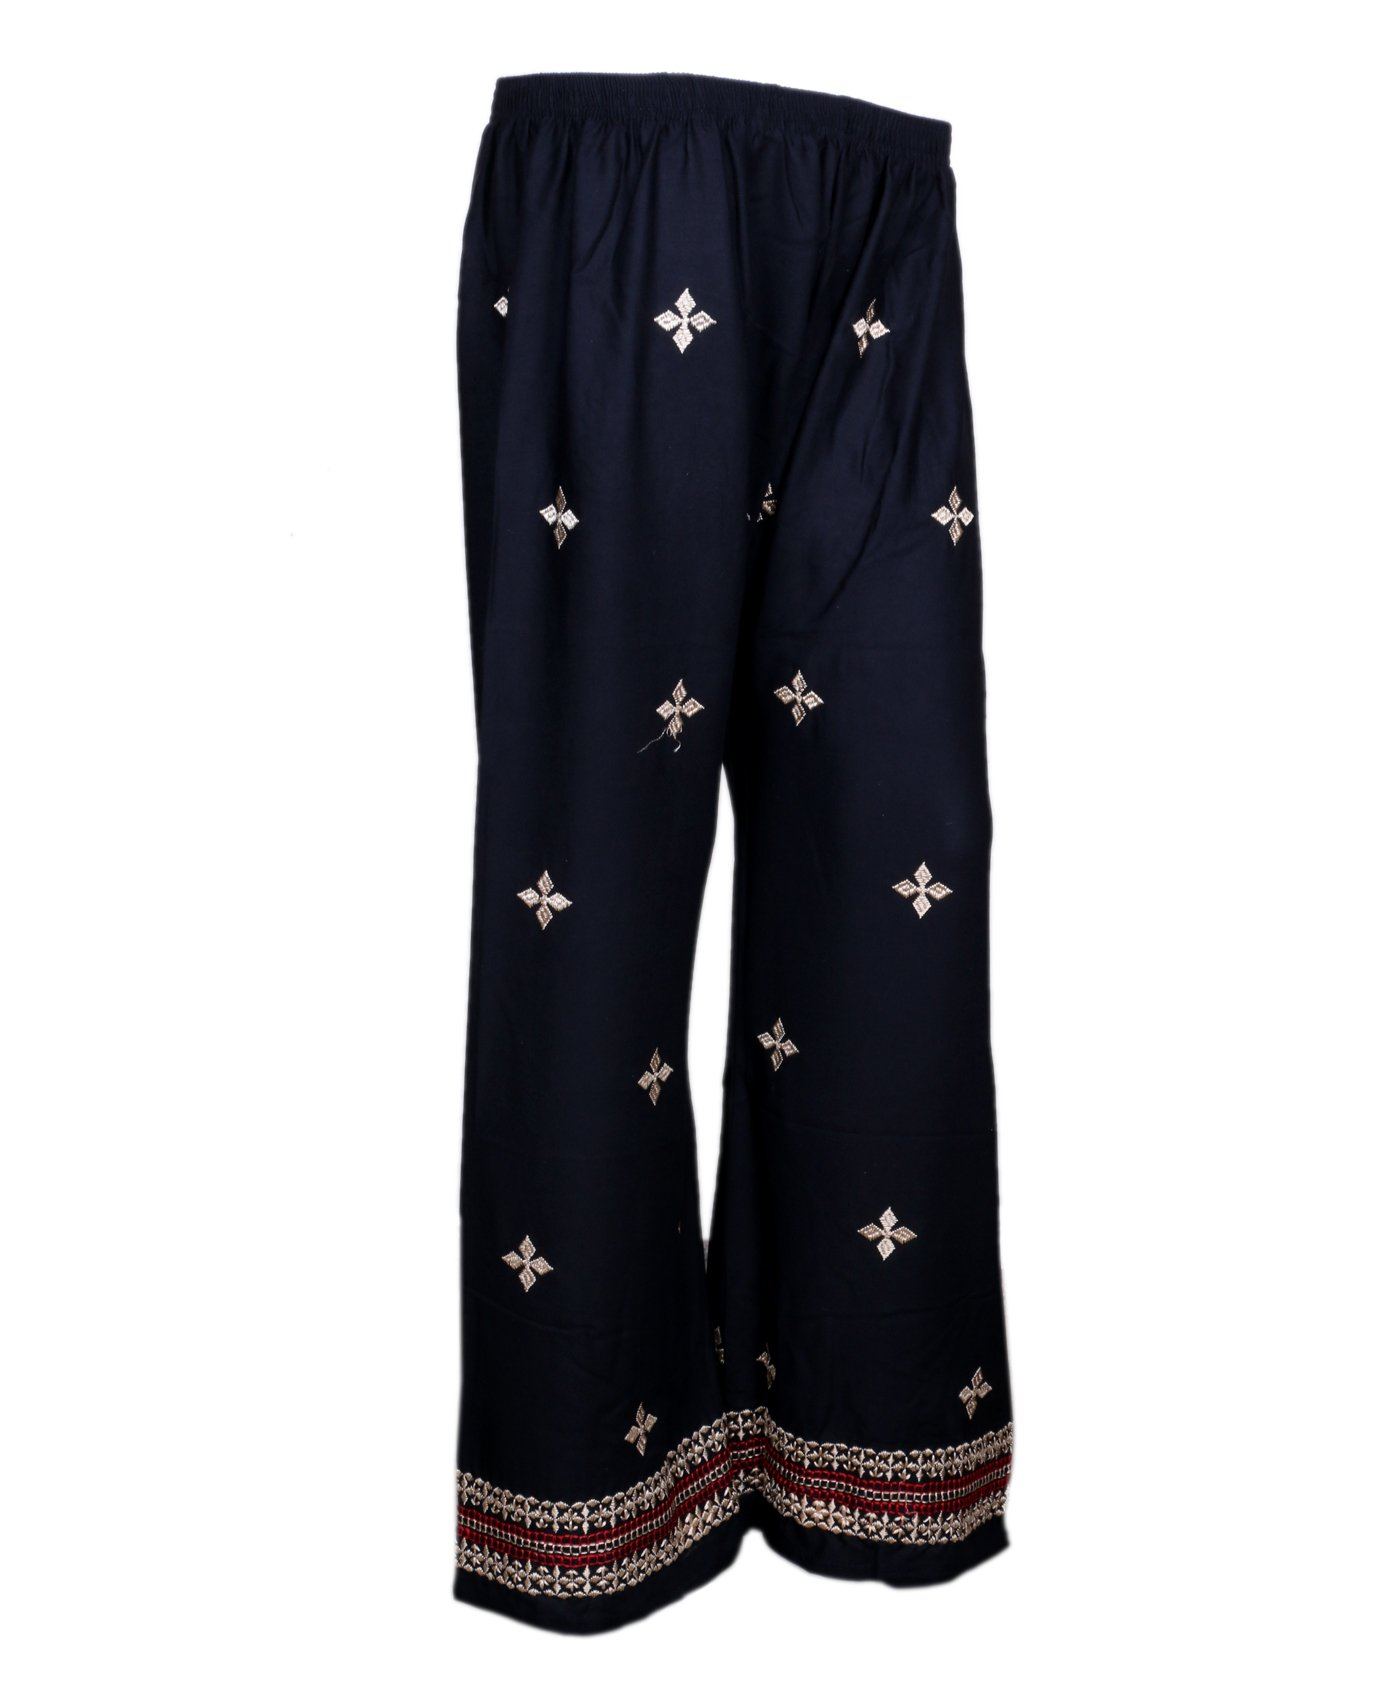 Indistar Black Rayon Embroidered Trendy and Stylish Pallazo Pant For Women_Size-Meduim_71954-MP-IW-M